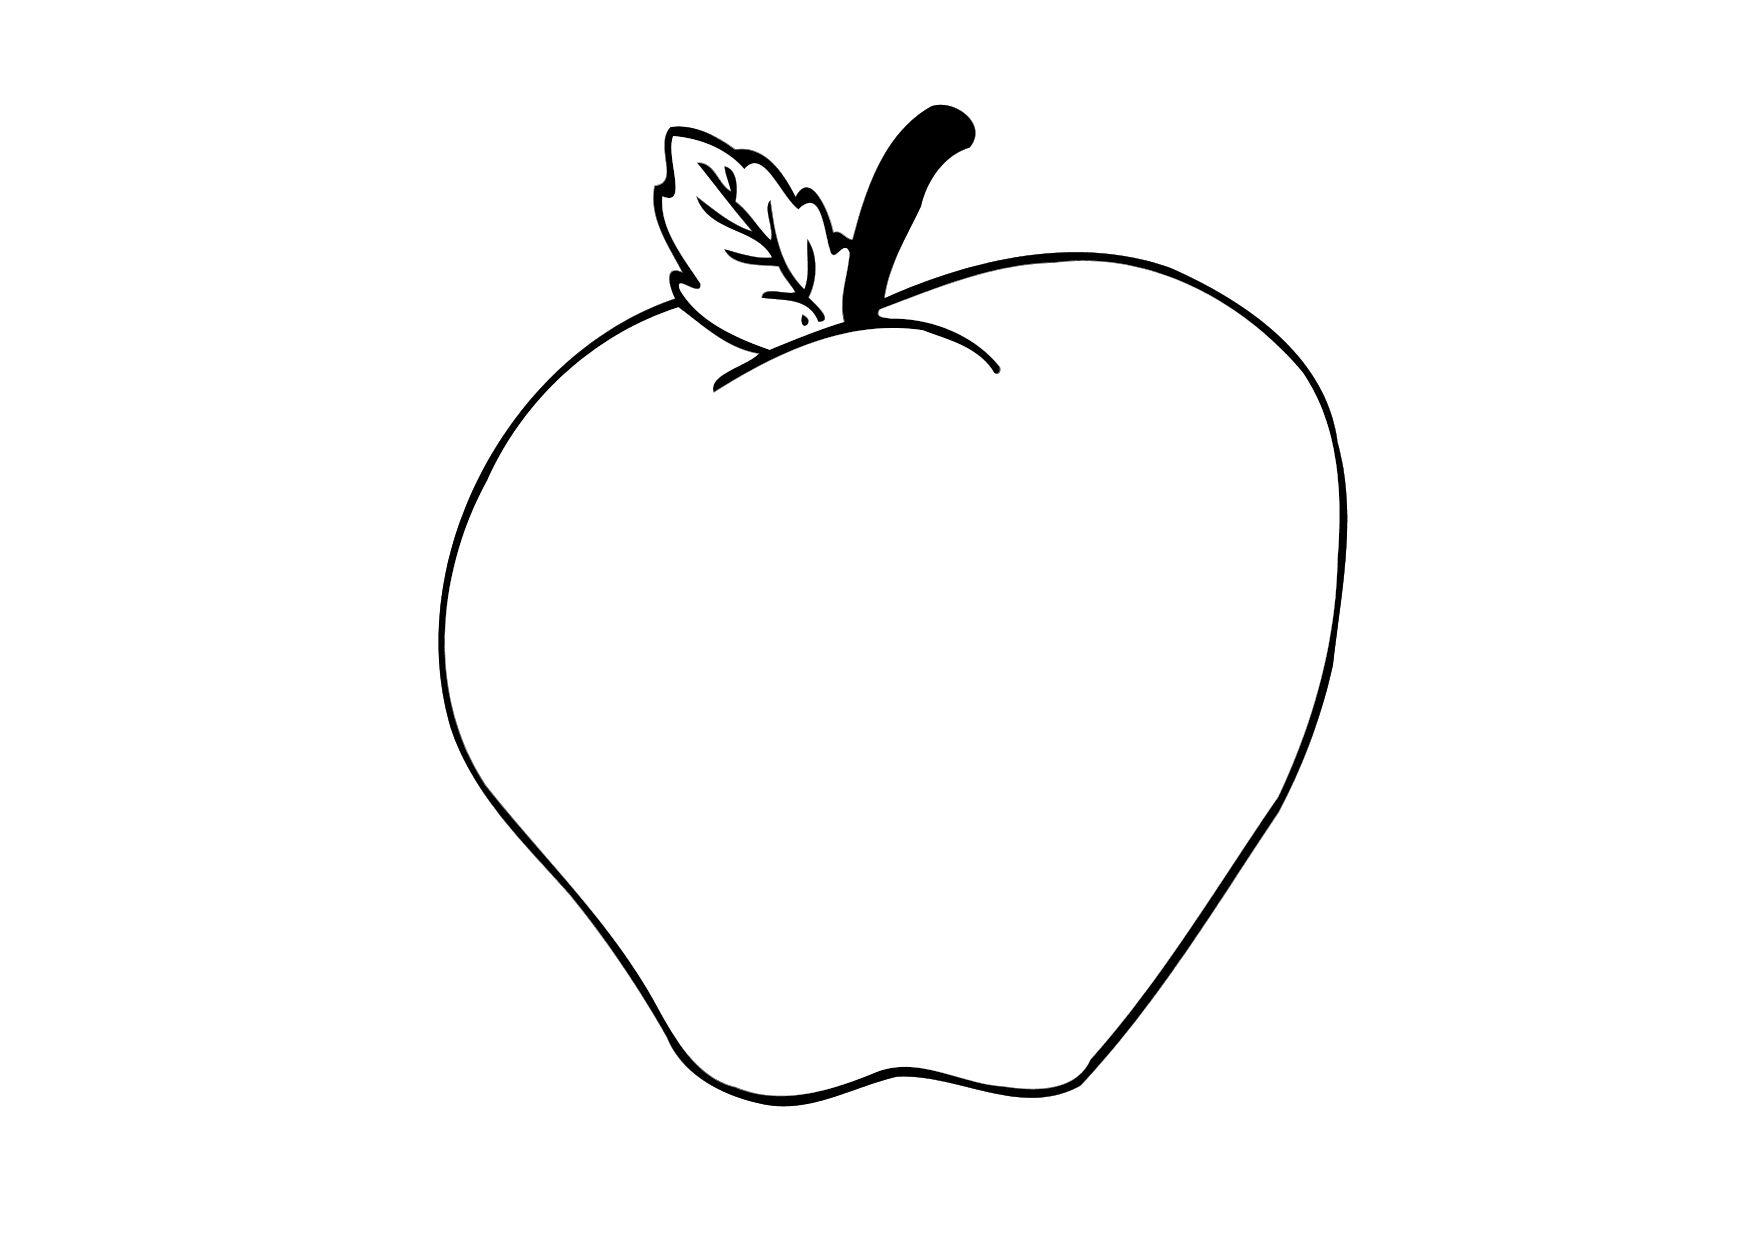 Coloriage pomme img 12305 - Dessin pomme apple ...